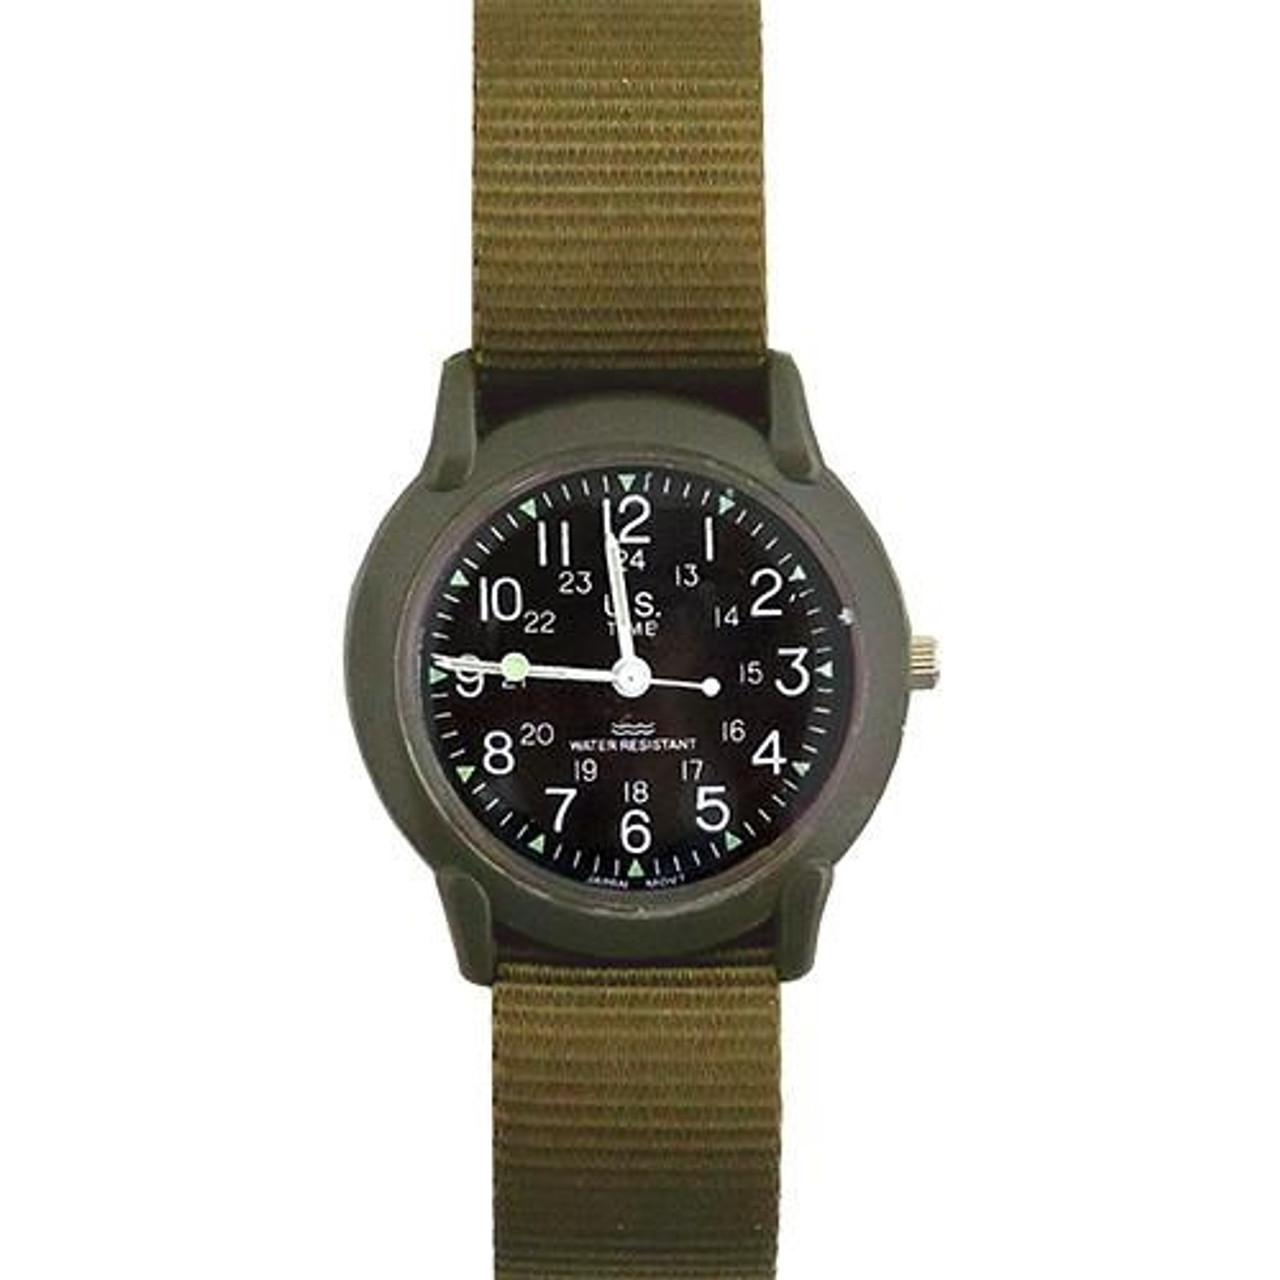 194A Ranger Watch from Hessen Militaria